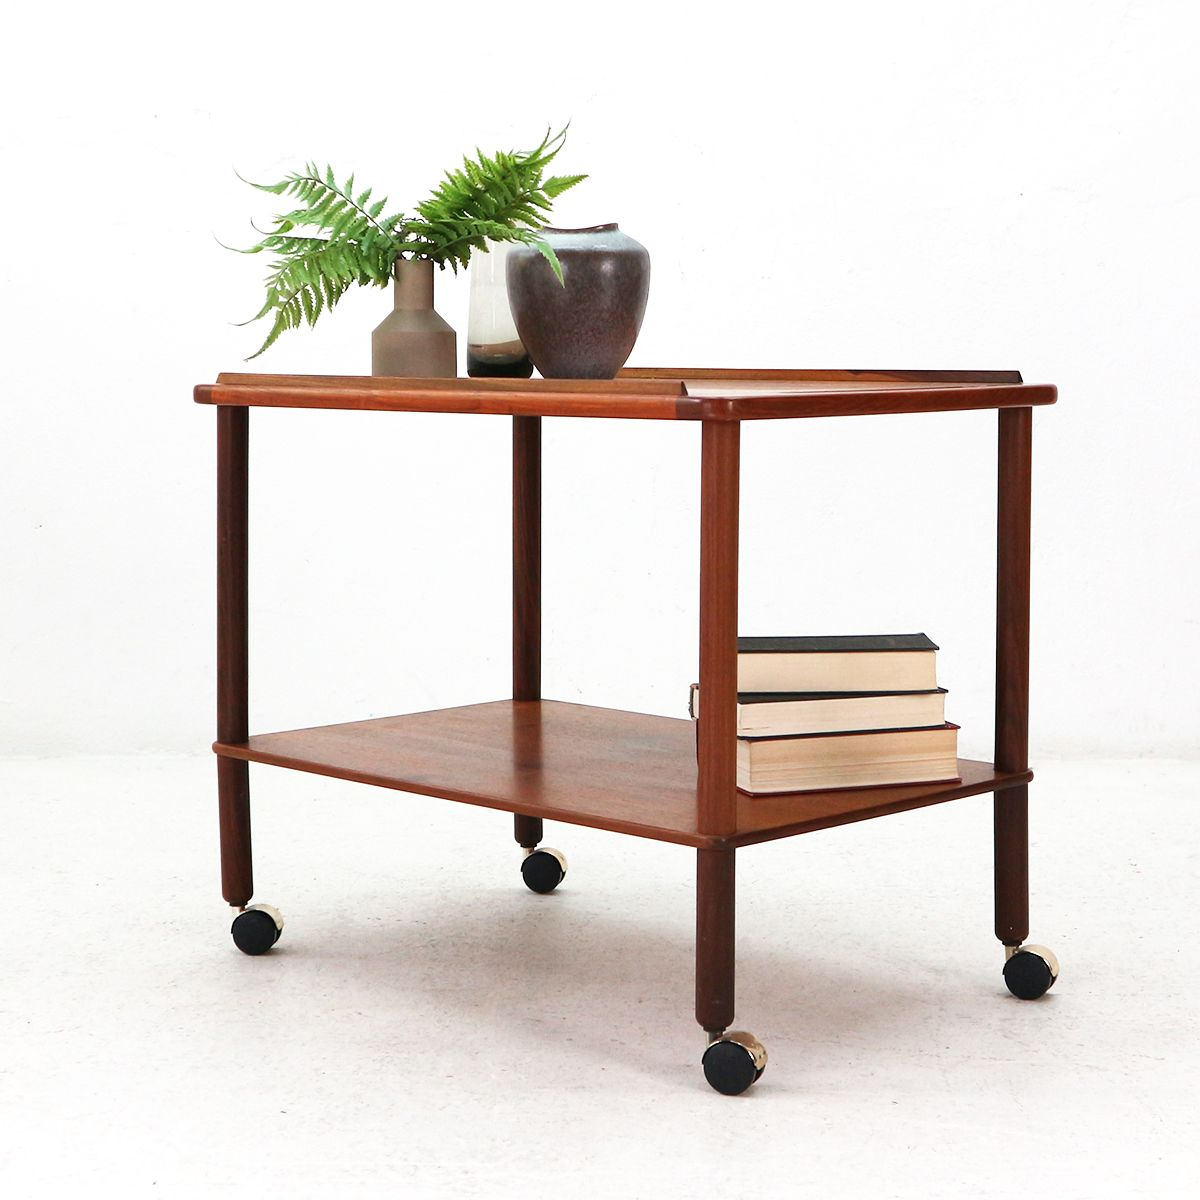 Teak serving trolley from foremost 1970s for sale at pamono for Foremost homes price list